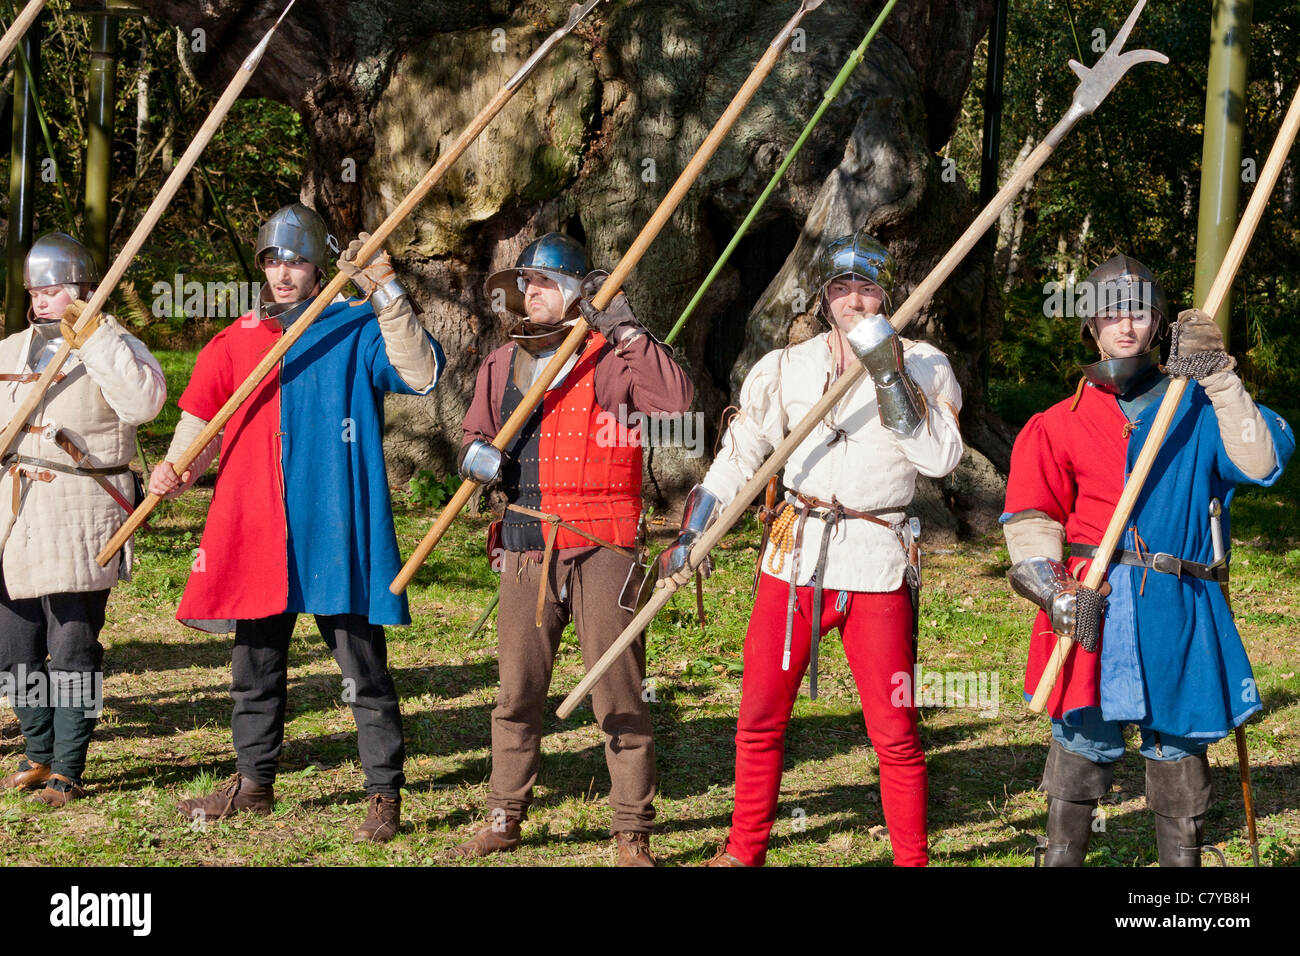 Demonstration Of Medieval Warfare The Wars Roses Period Sherwood Forest Country Park